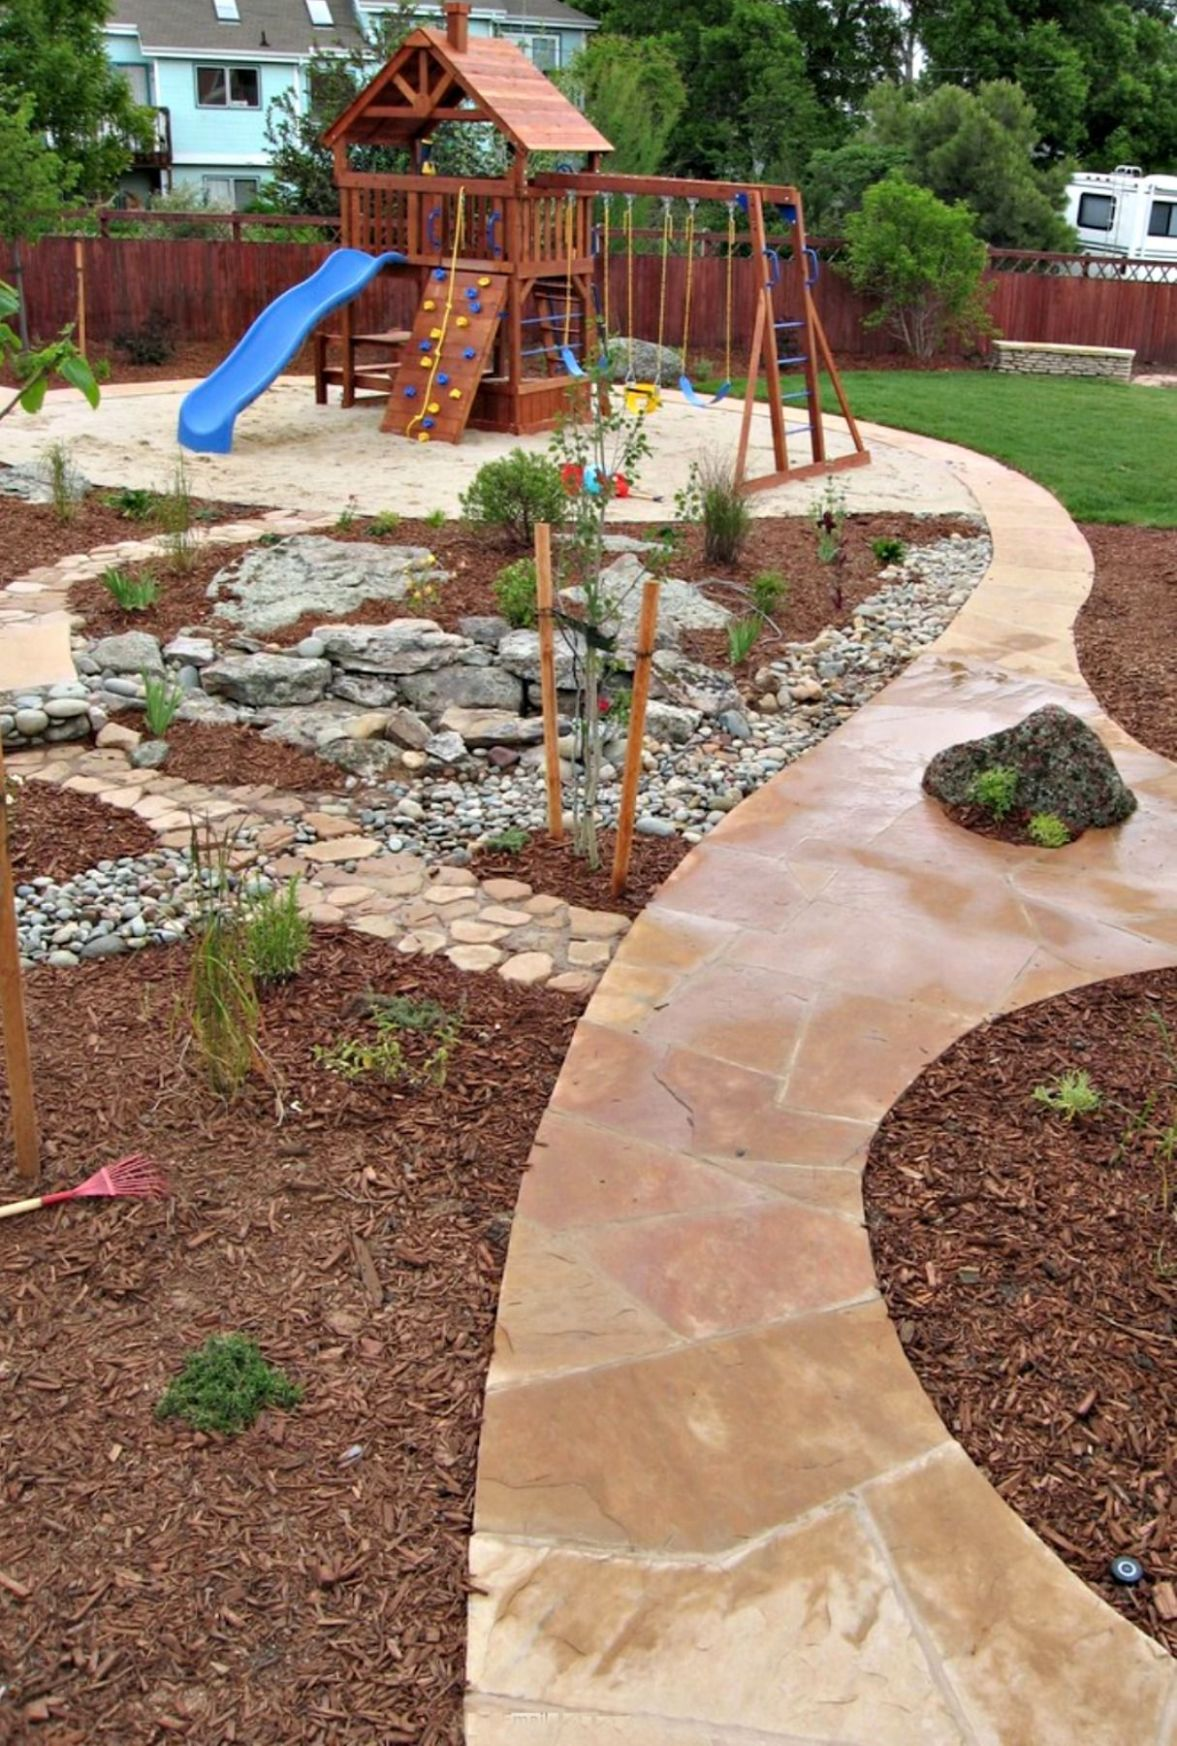 12 Fun Backyard Ideas for Kids - garden ideas for kids